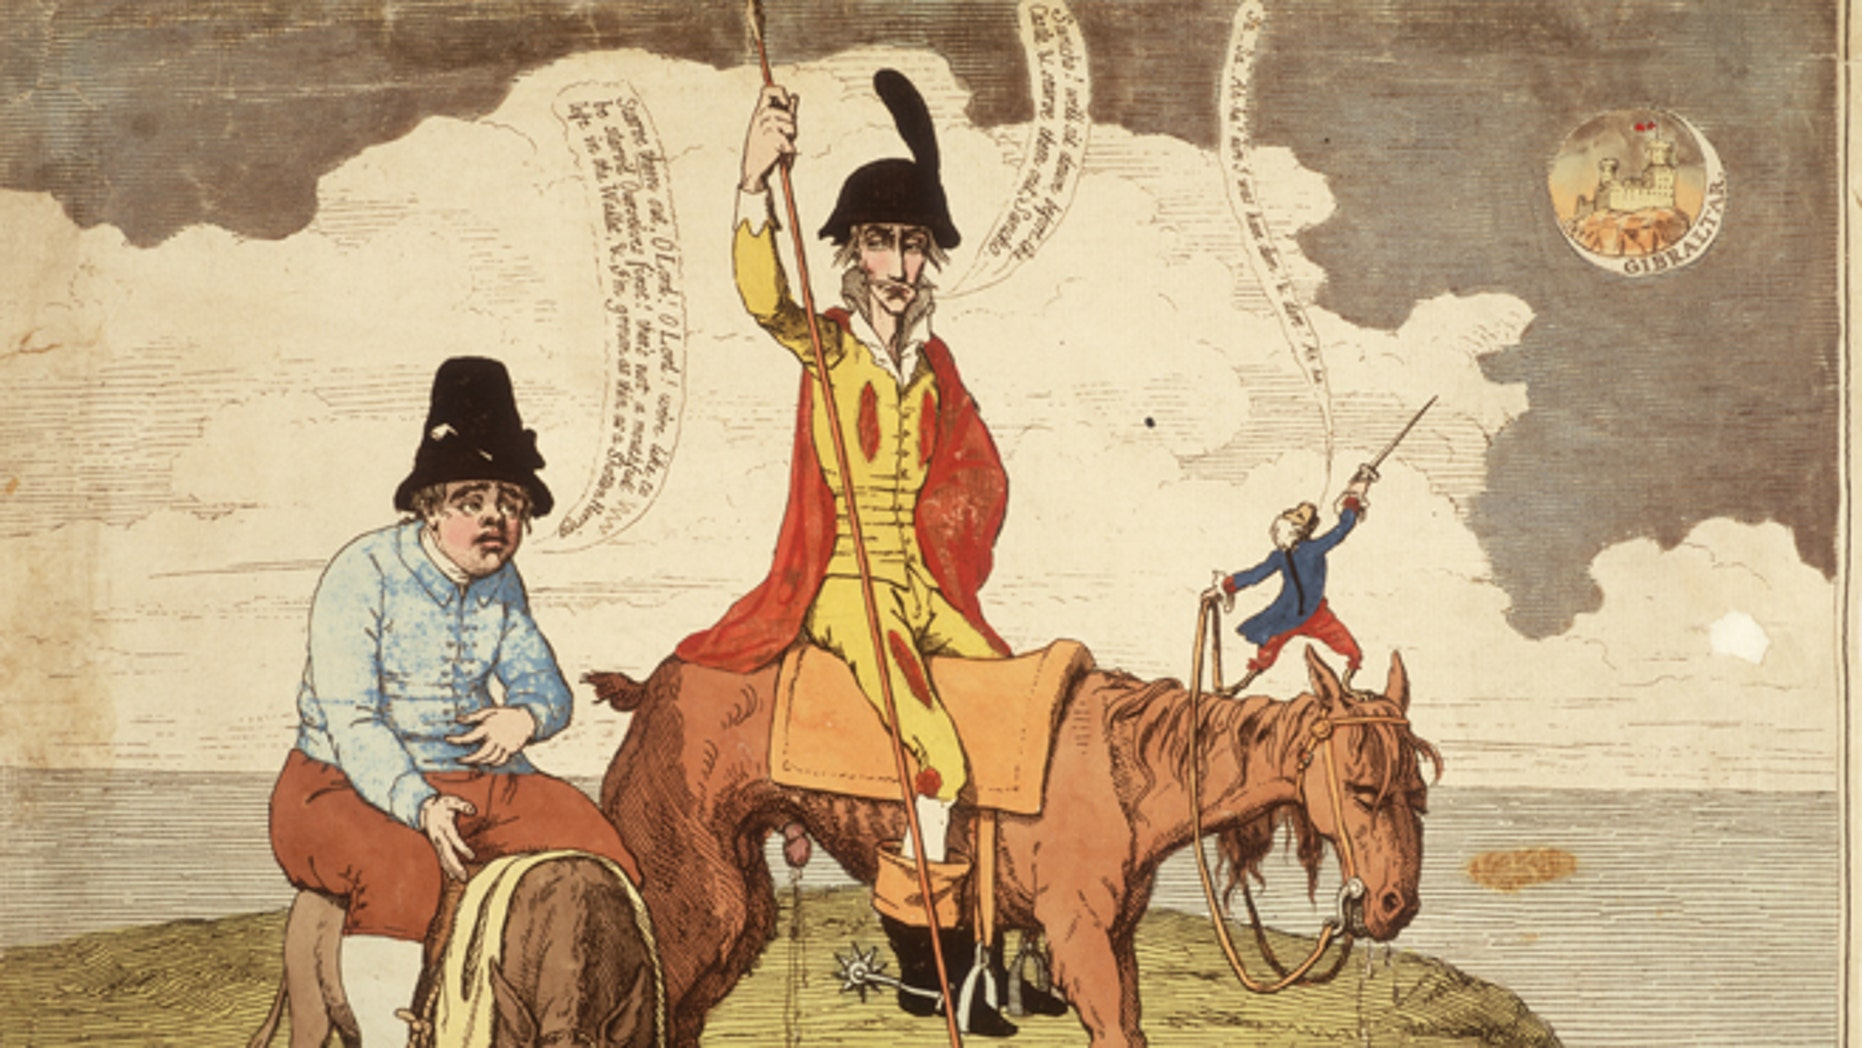 circa 1782:  'The Castle in the Moon - a new adventure, not mentioned by Cervantes'. Fictional Spanish knight Don Quixote and his companion Sancho Panza besiege the 'castle in the moon' of Gibraltar, occupied by the British. 'Sancho! We'll sit down before the castle, & starve them out, Sancho.' proposes the hero, to which Panza replies 'Starve them out, o Lord! O Lord! We're like to be starv'd ourselves first! There's not a mouthful left in the wallet, & I'm grown as thin as a Shotten herring.' Meanwhile a French monkey stands on the neck of the horse, making bold gestures with his sword.  (Photo by Hulton Archive/Getty Images)